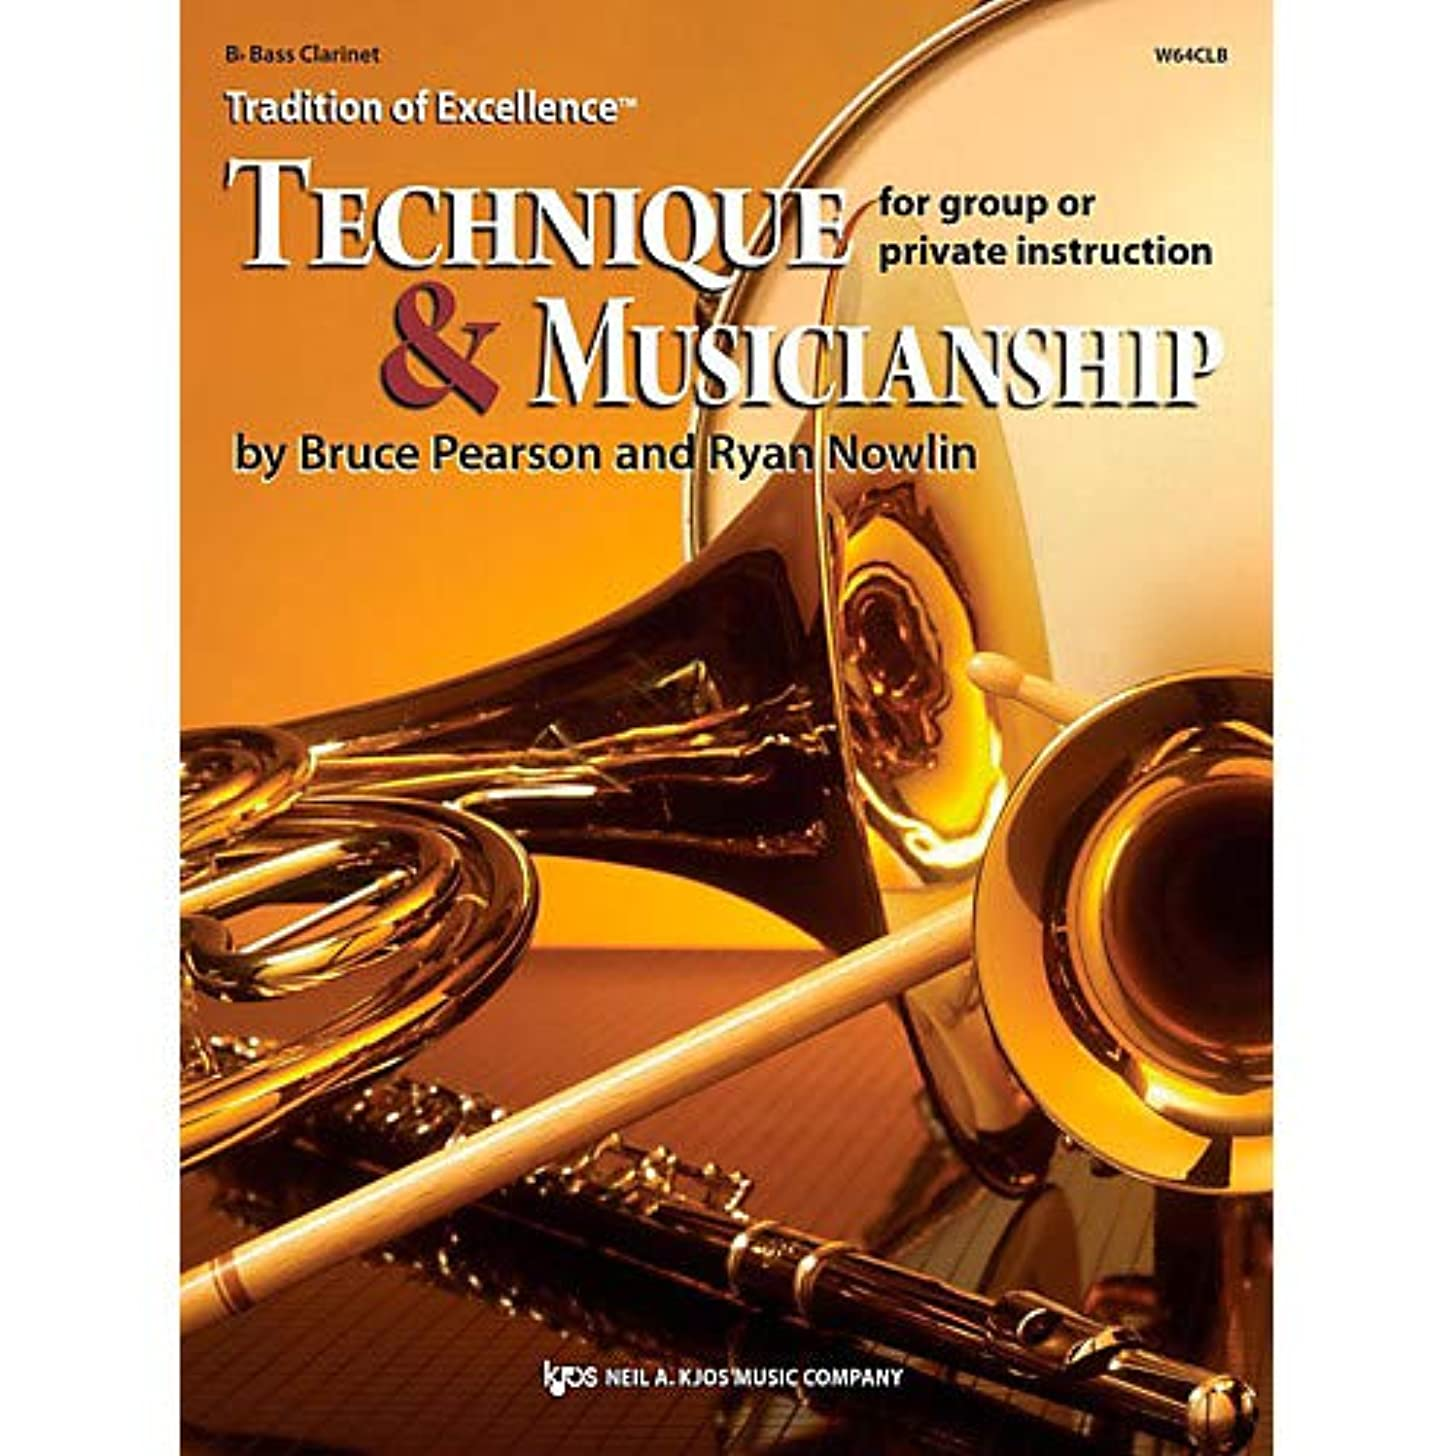 Tradition of Excellence: Technique Musicianship Bass Clarinet Pack of 3